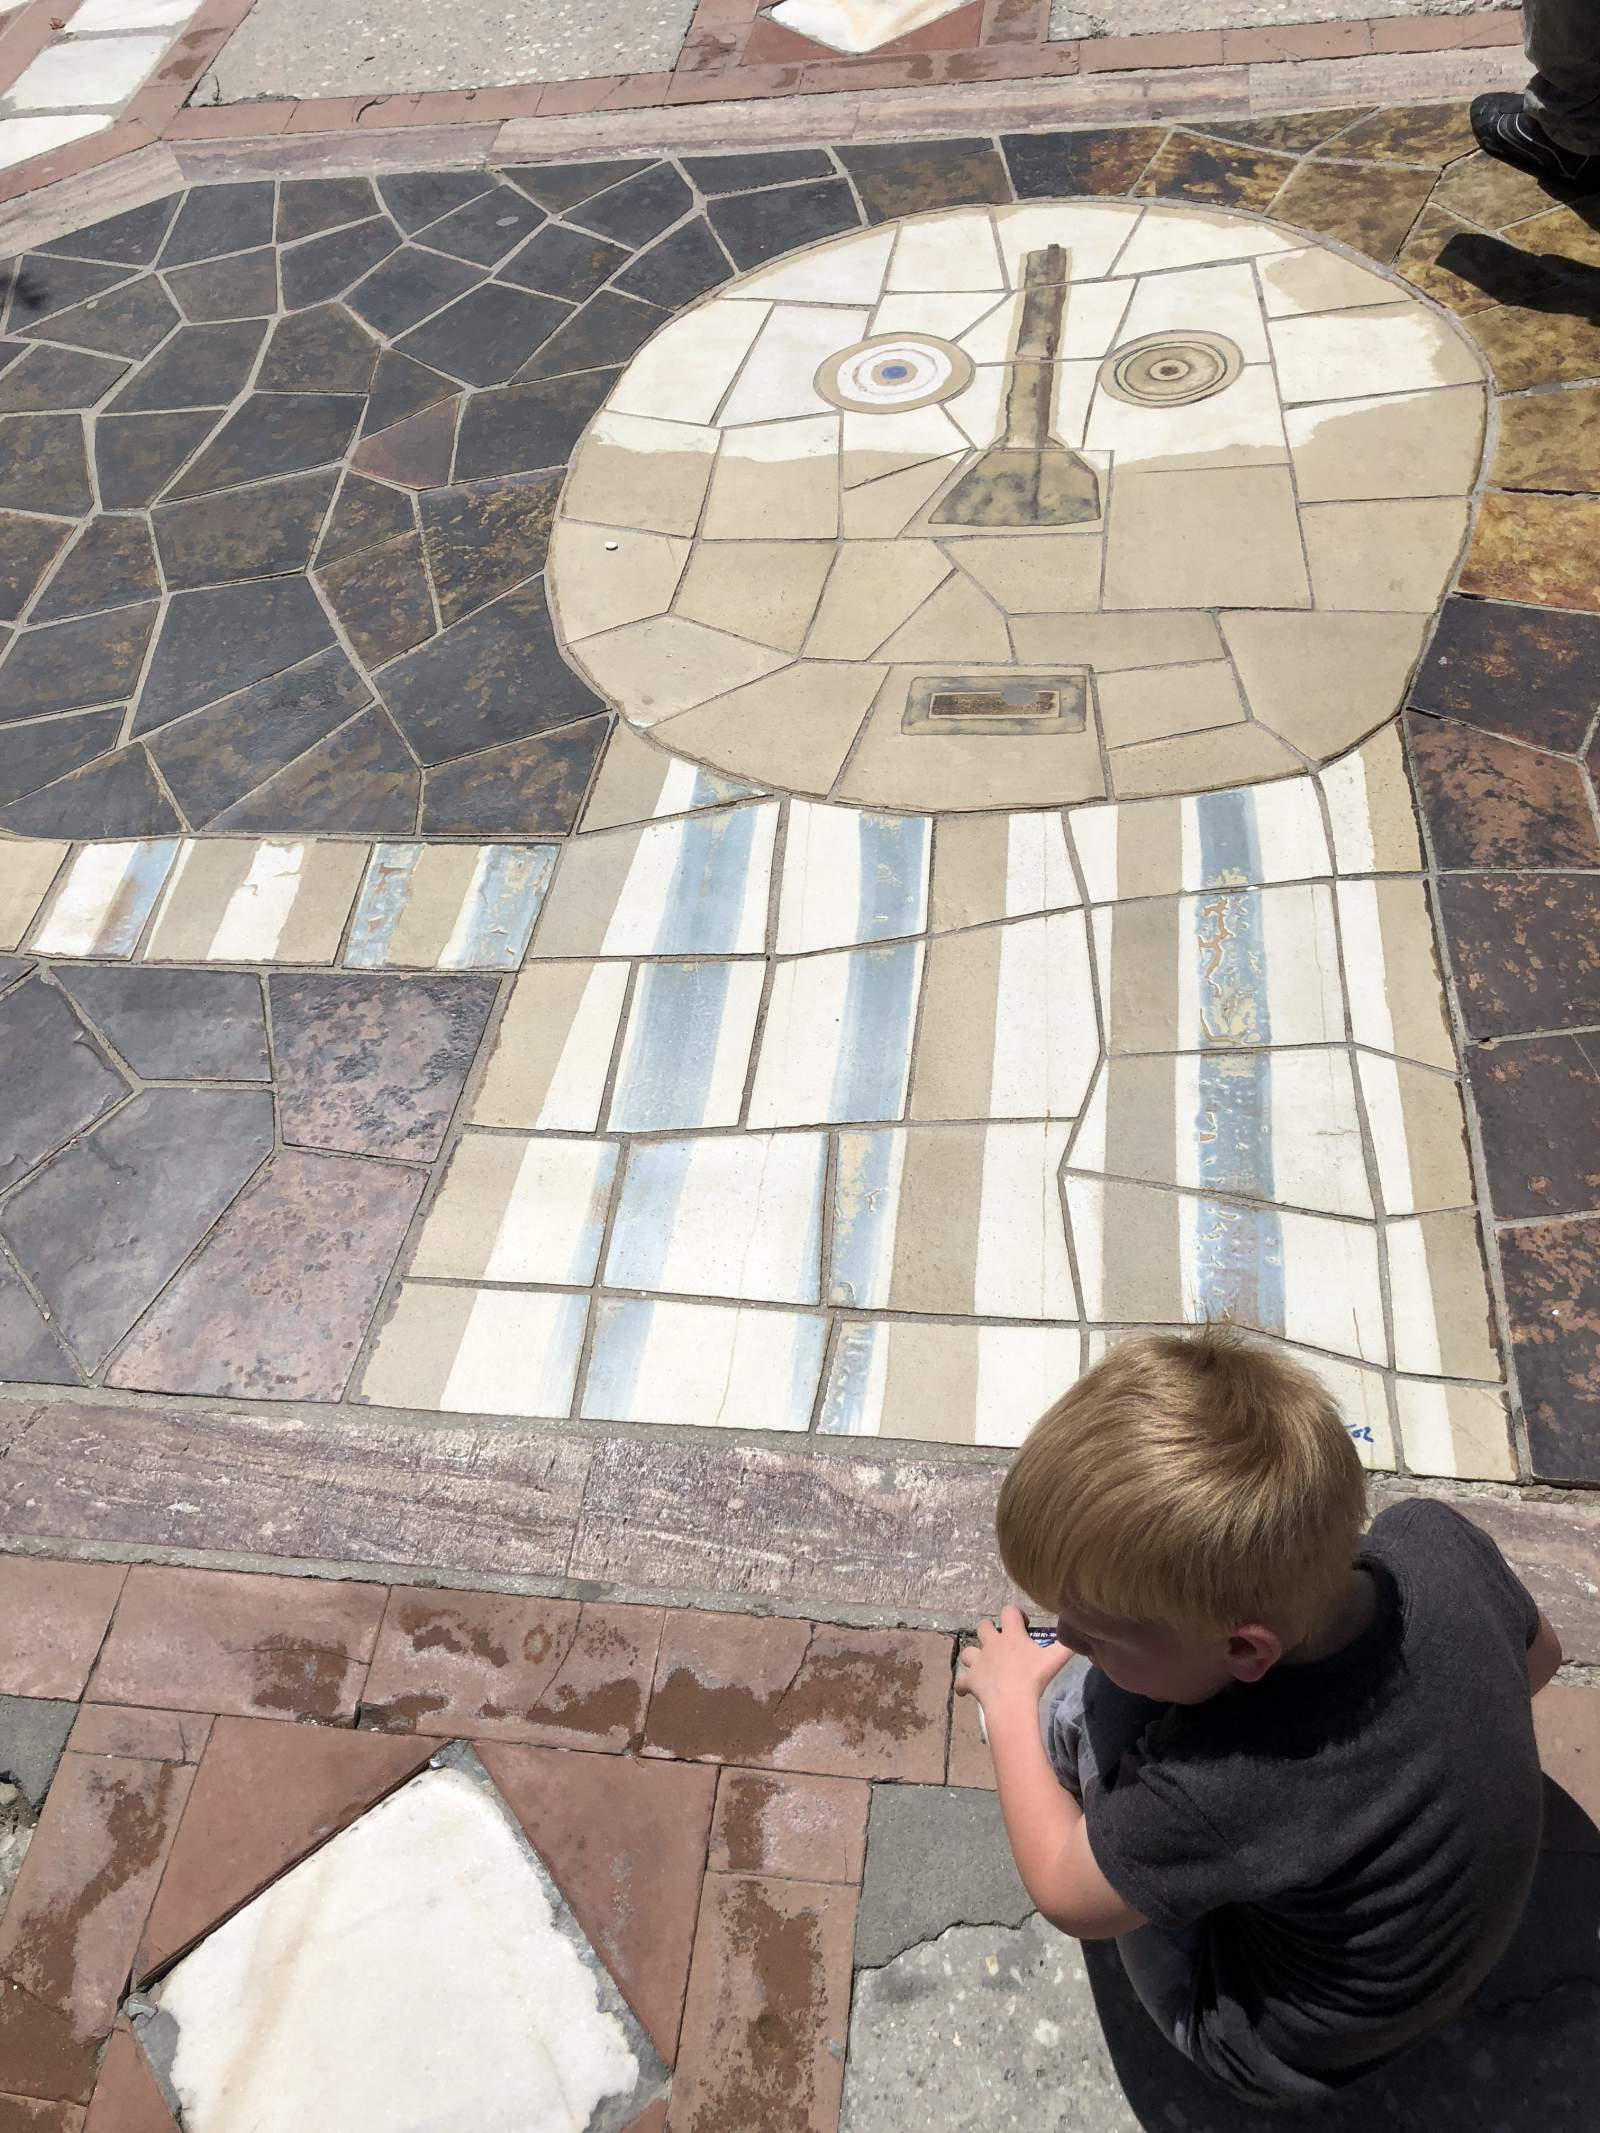 The floor tiles at the promenade of Benalmadena are varied and interesting.